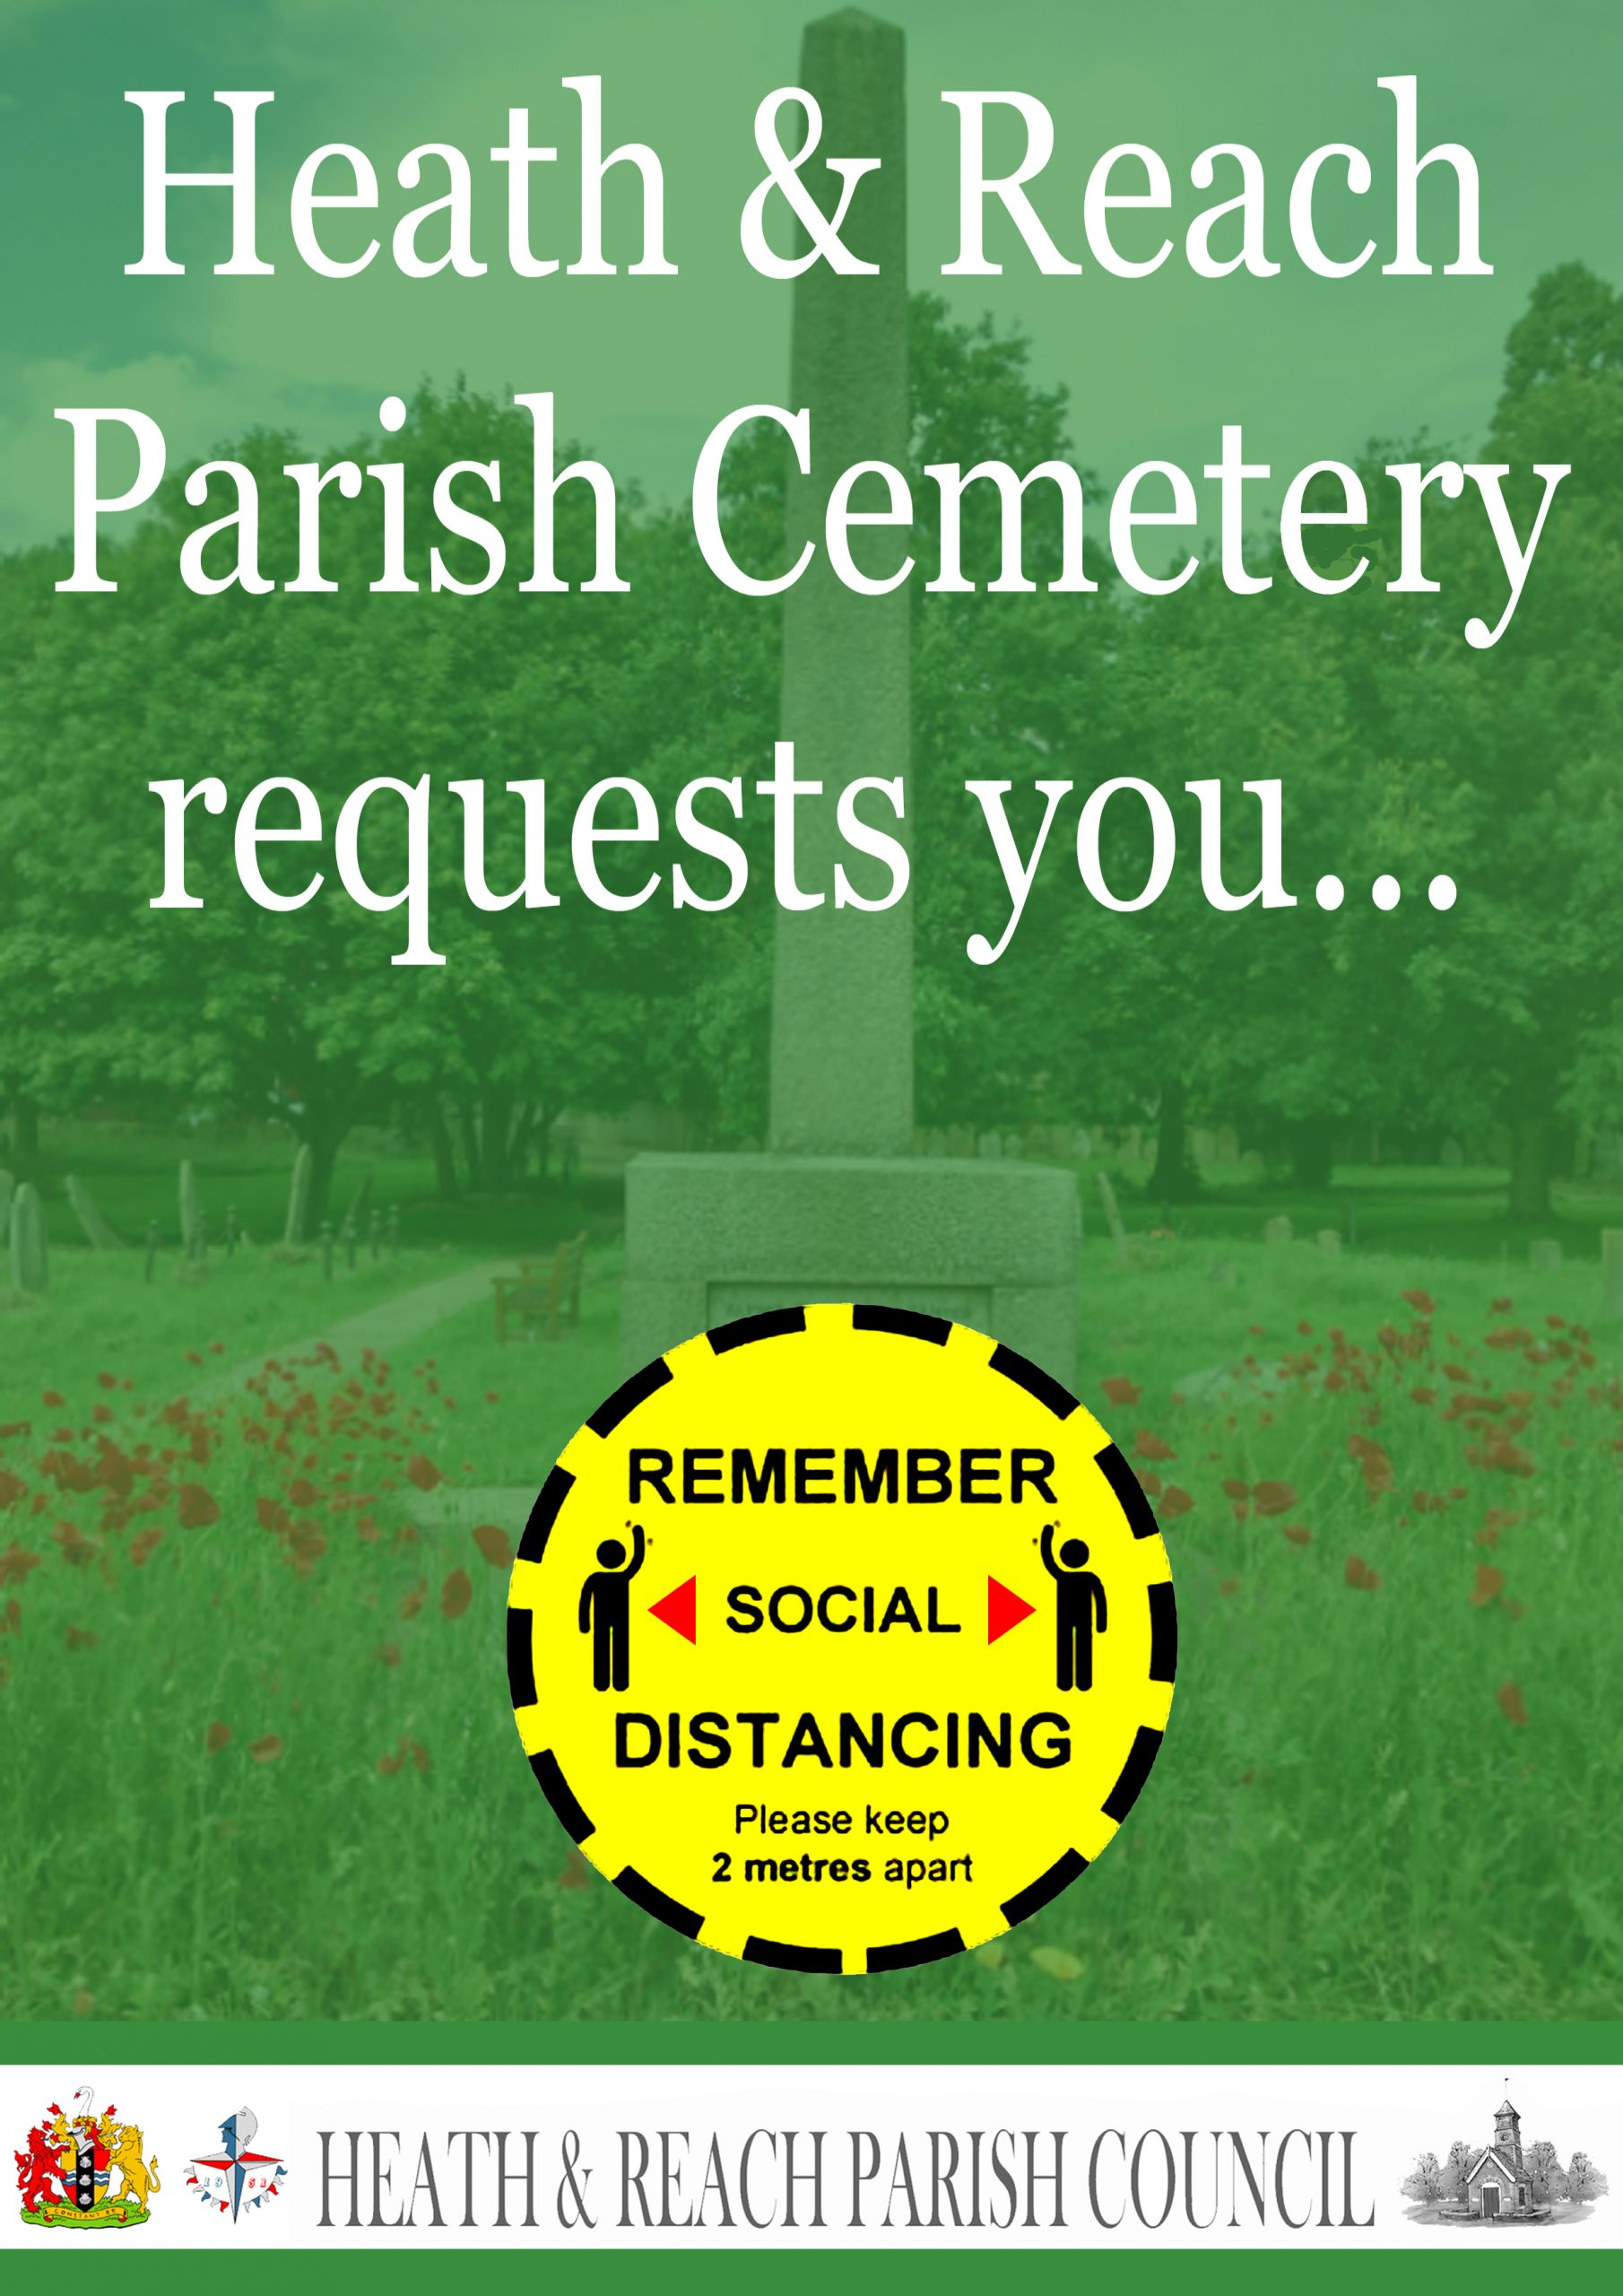 2 metre safe distance poster for the Heath and Reach Cemetery